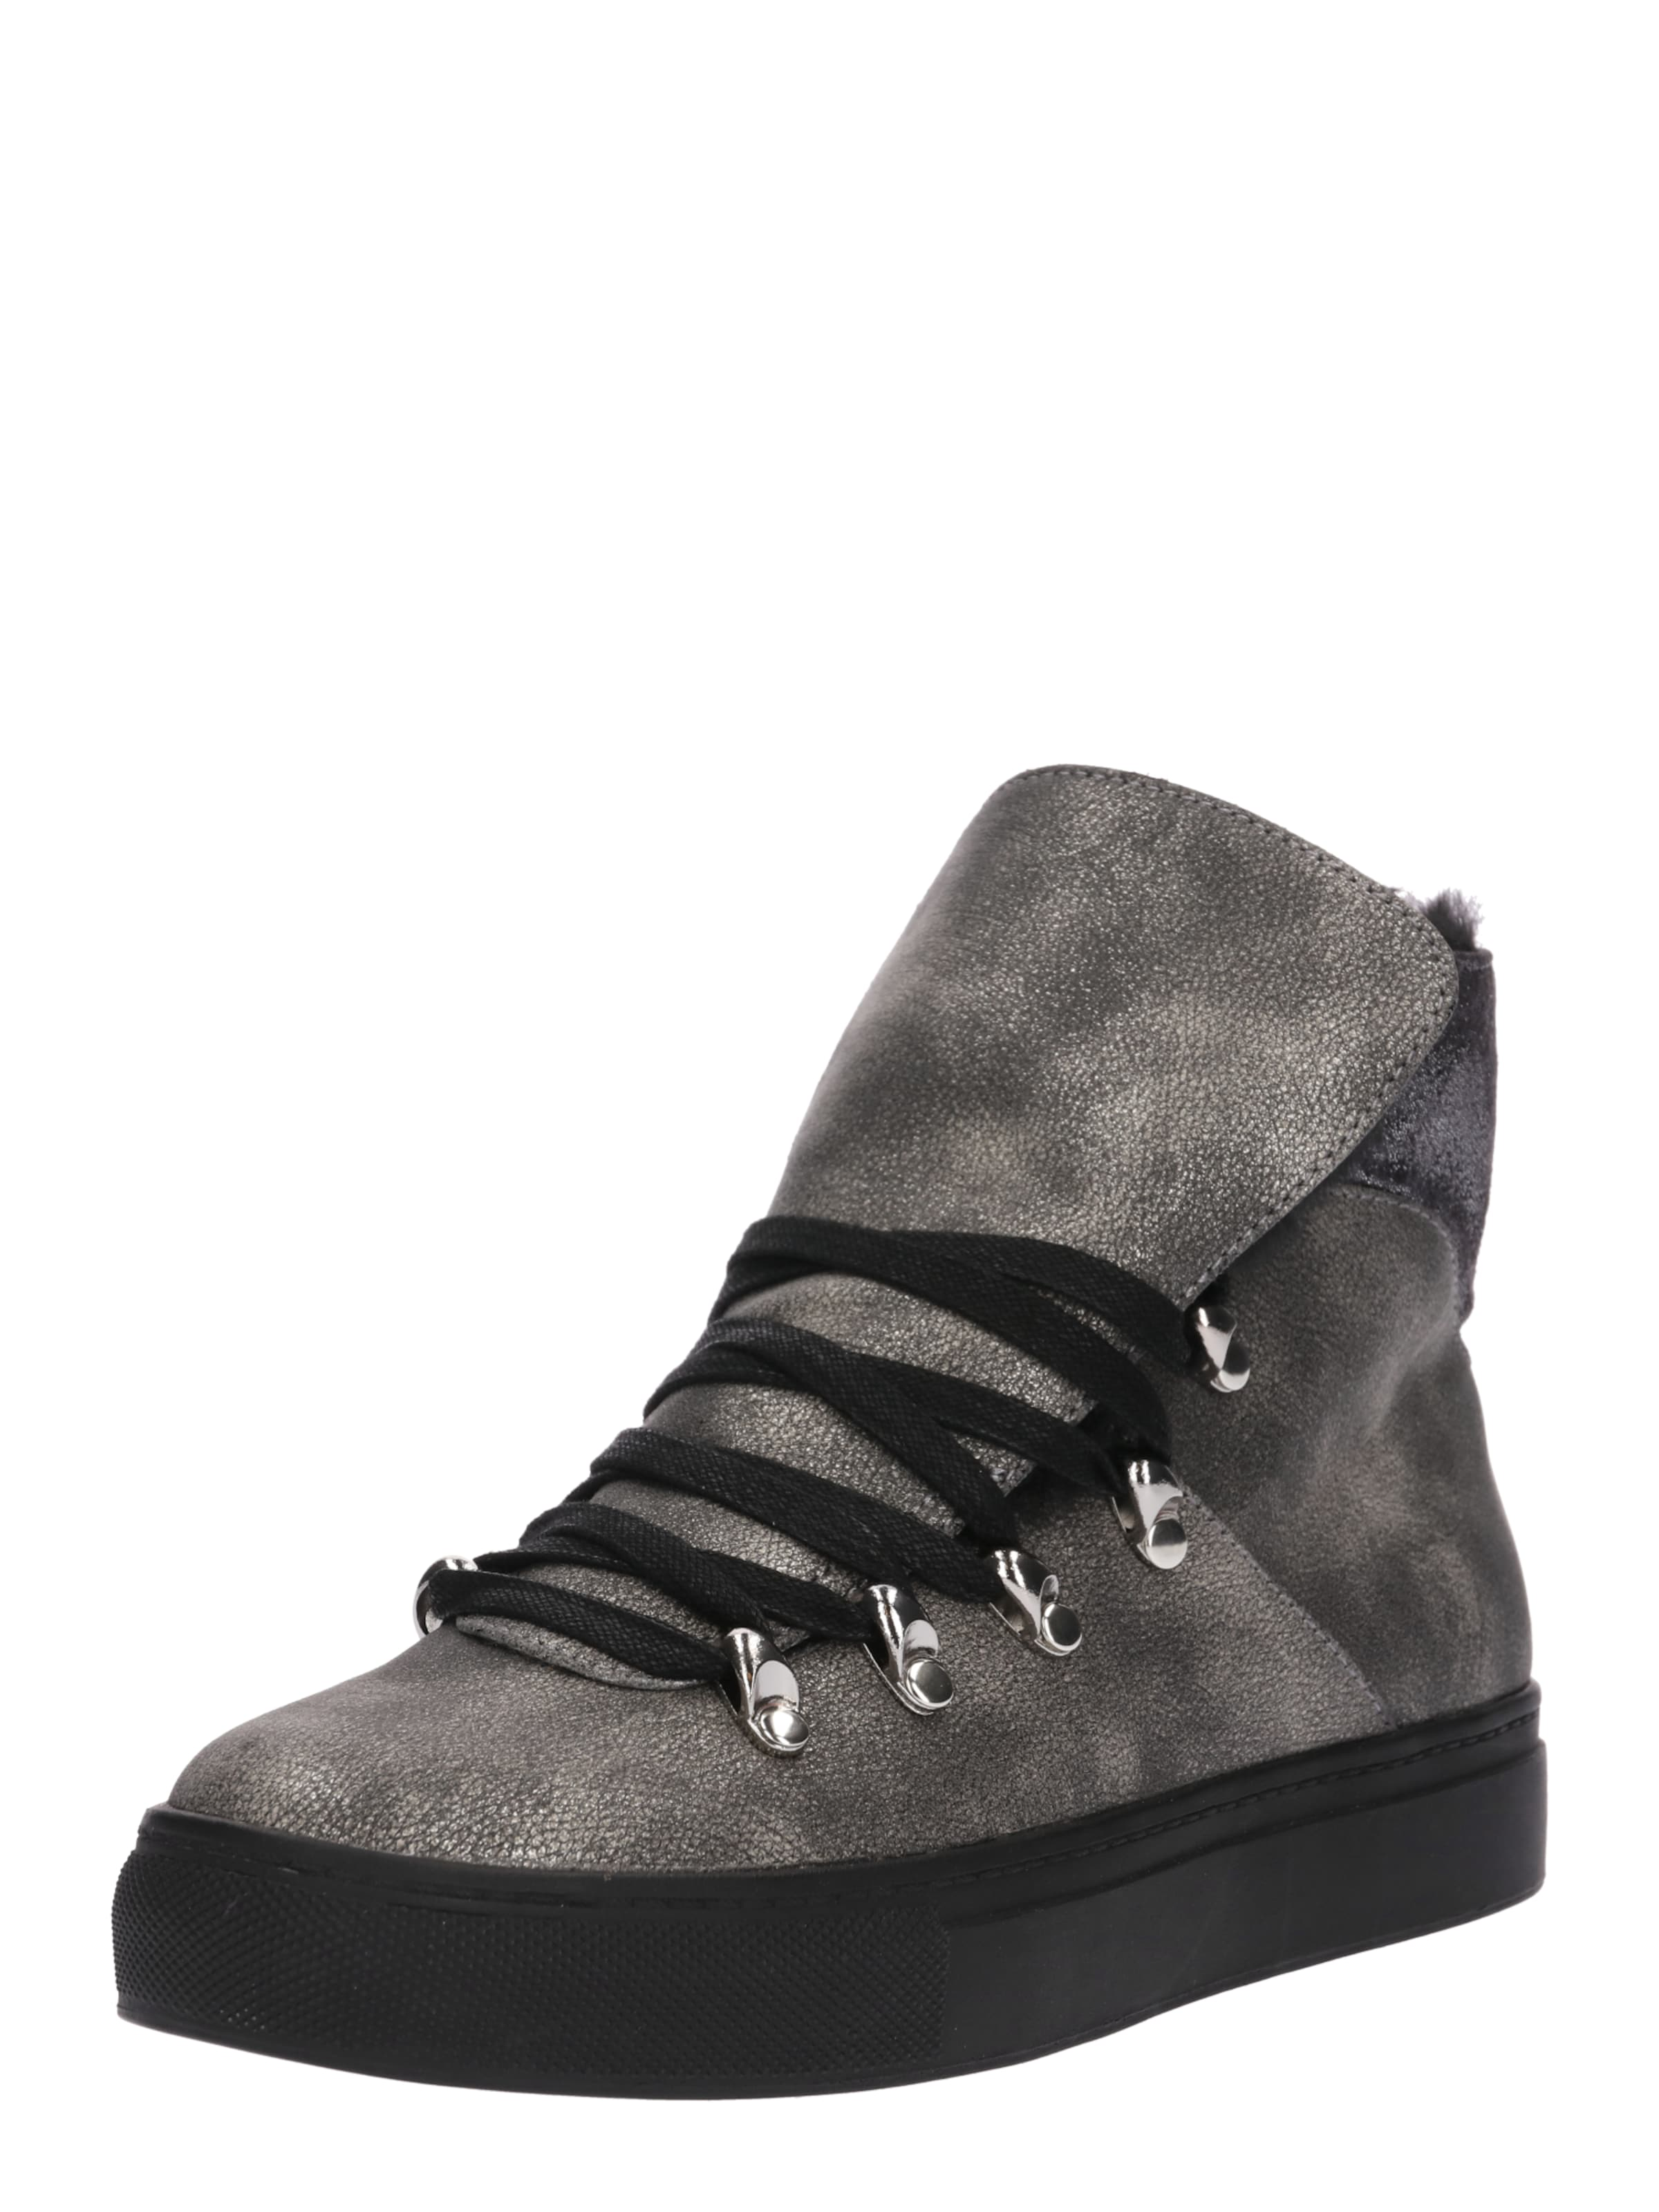 À 'jonna' You Gris Bottines About En Lacets wym0N8PvnO